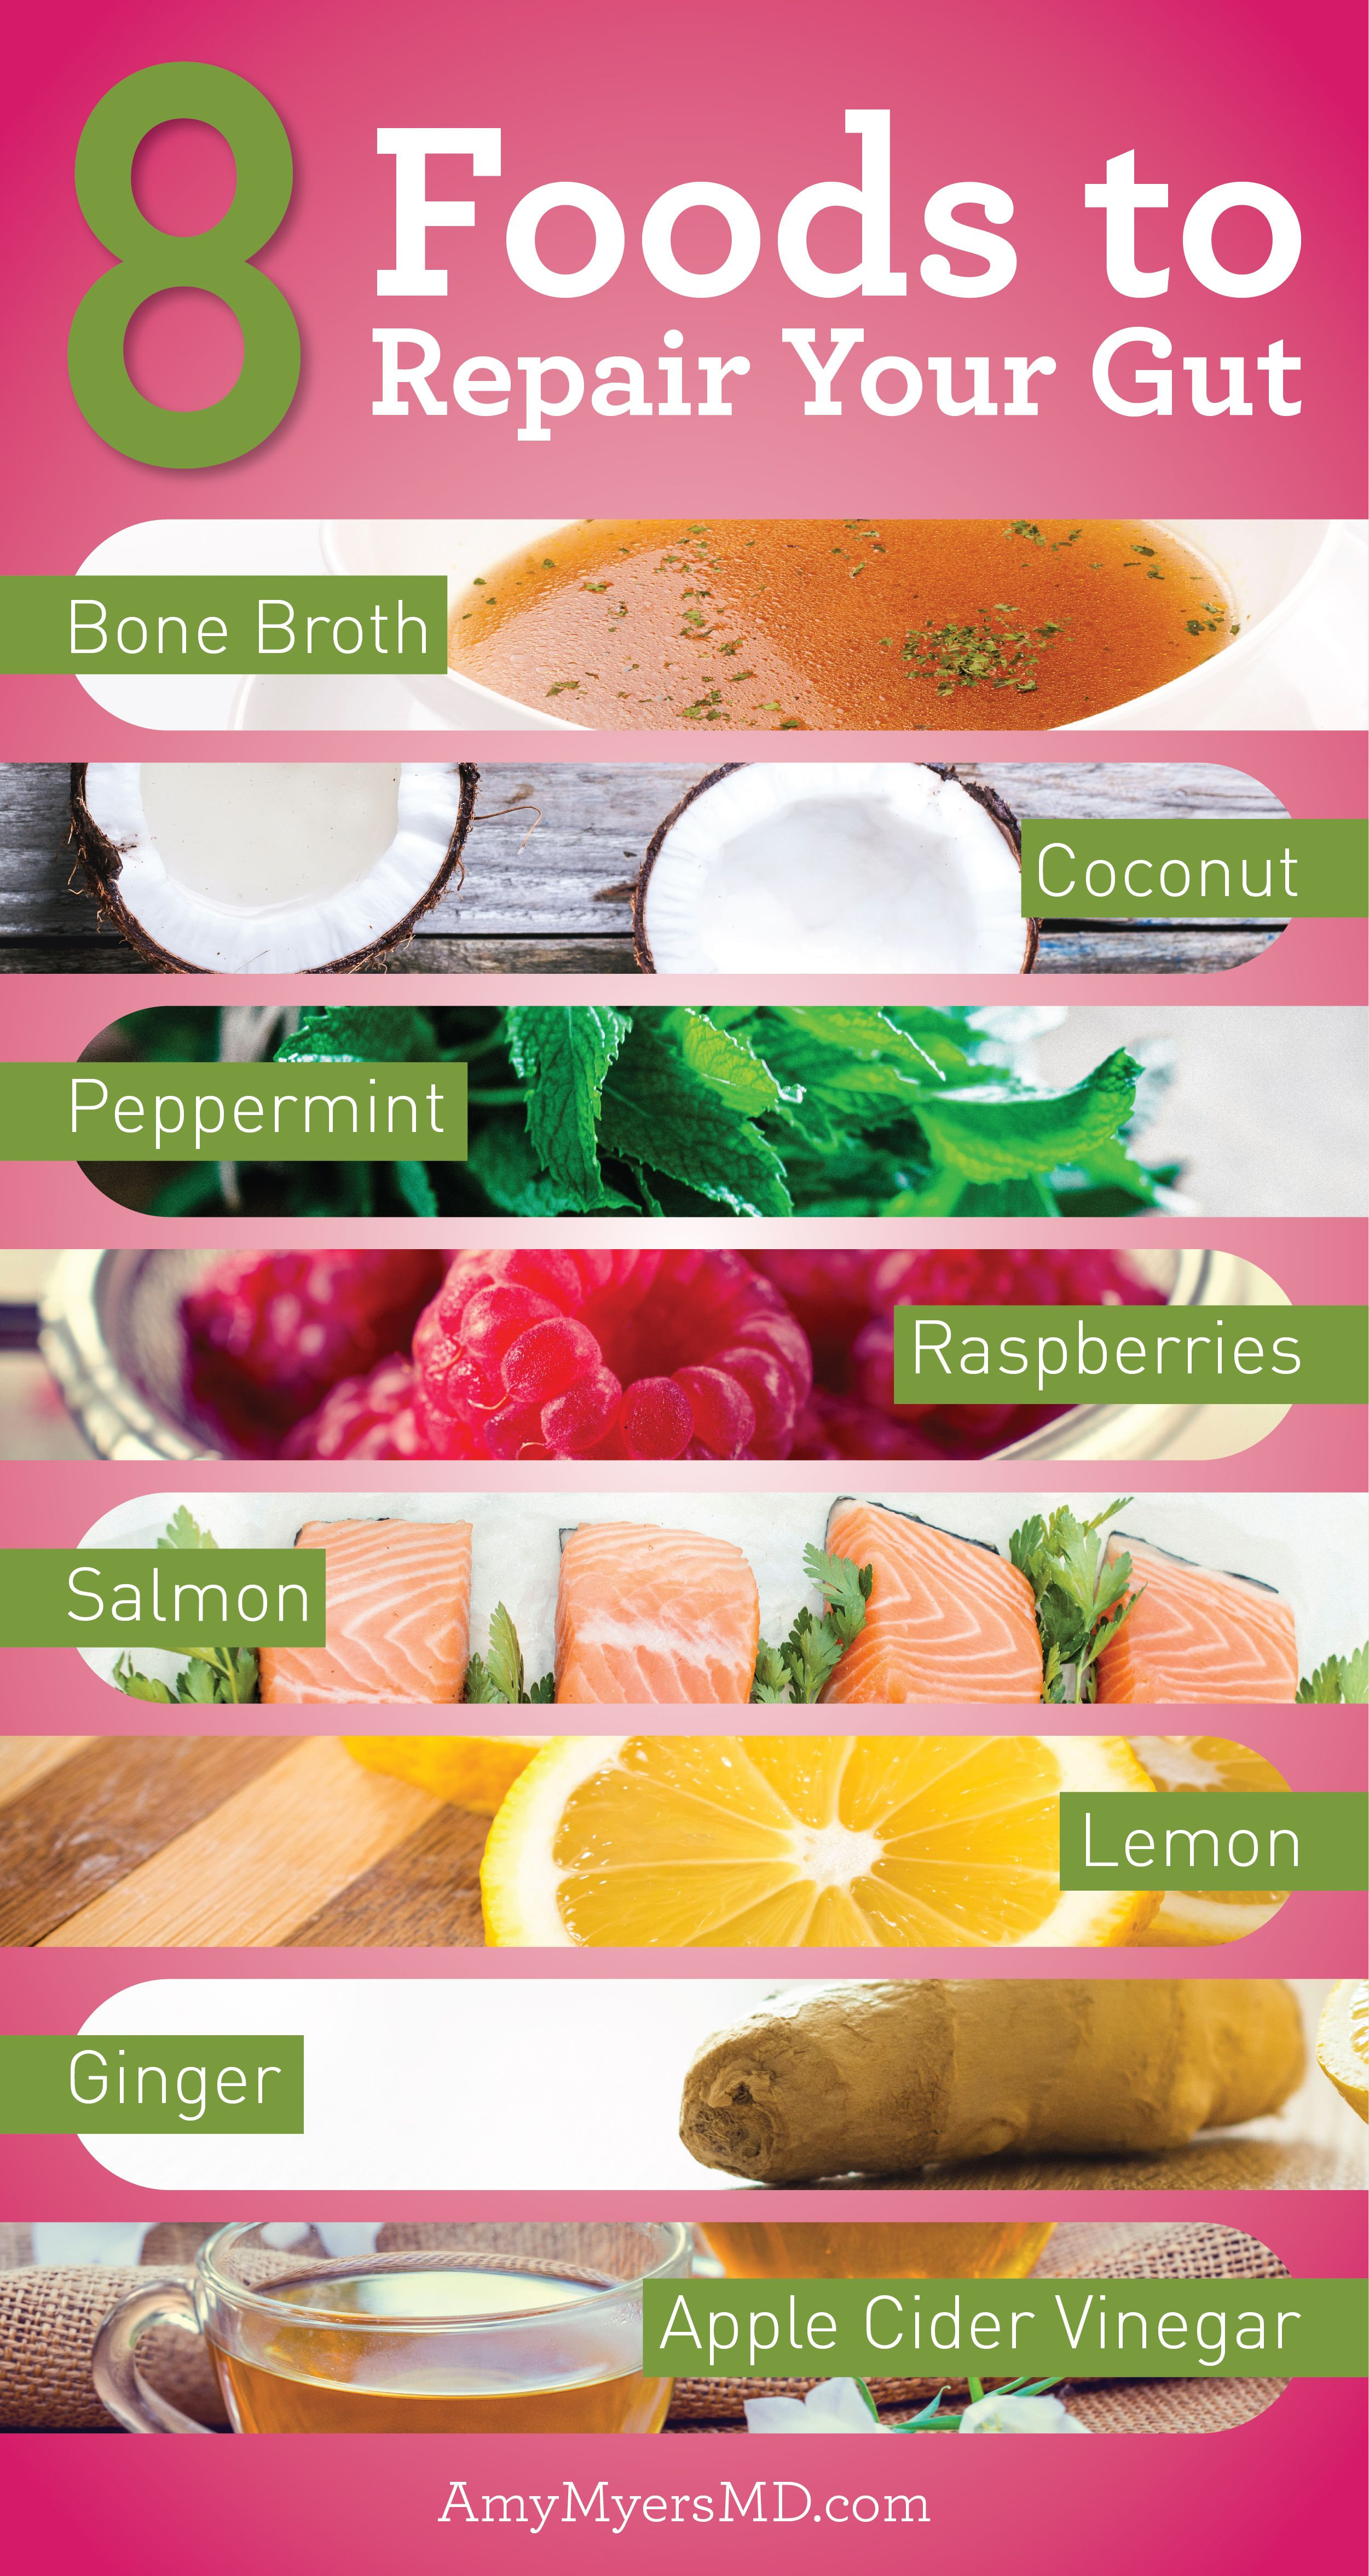 8 Foods To Repair Your Gut That You Should Be Eating Amy Myers Md Coconut Health Benefits Diet And Nutrition Digestive Health